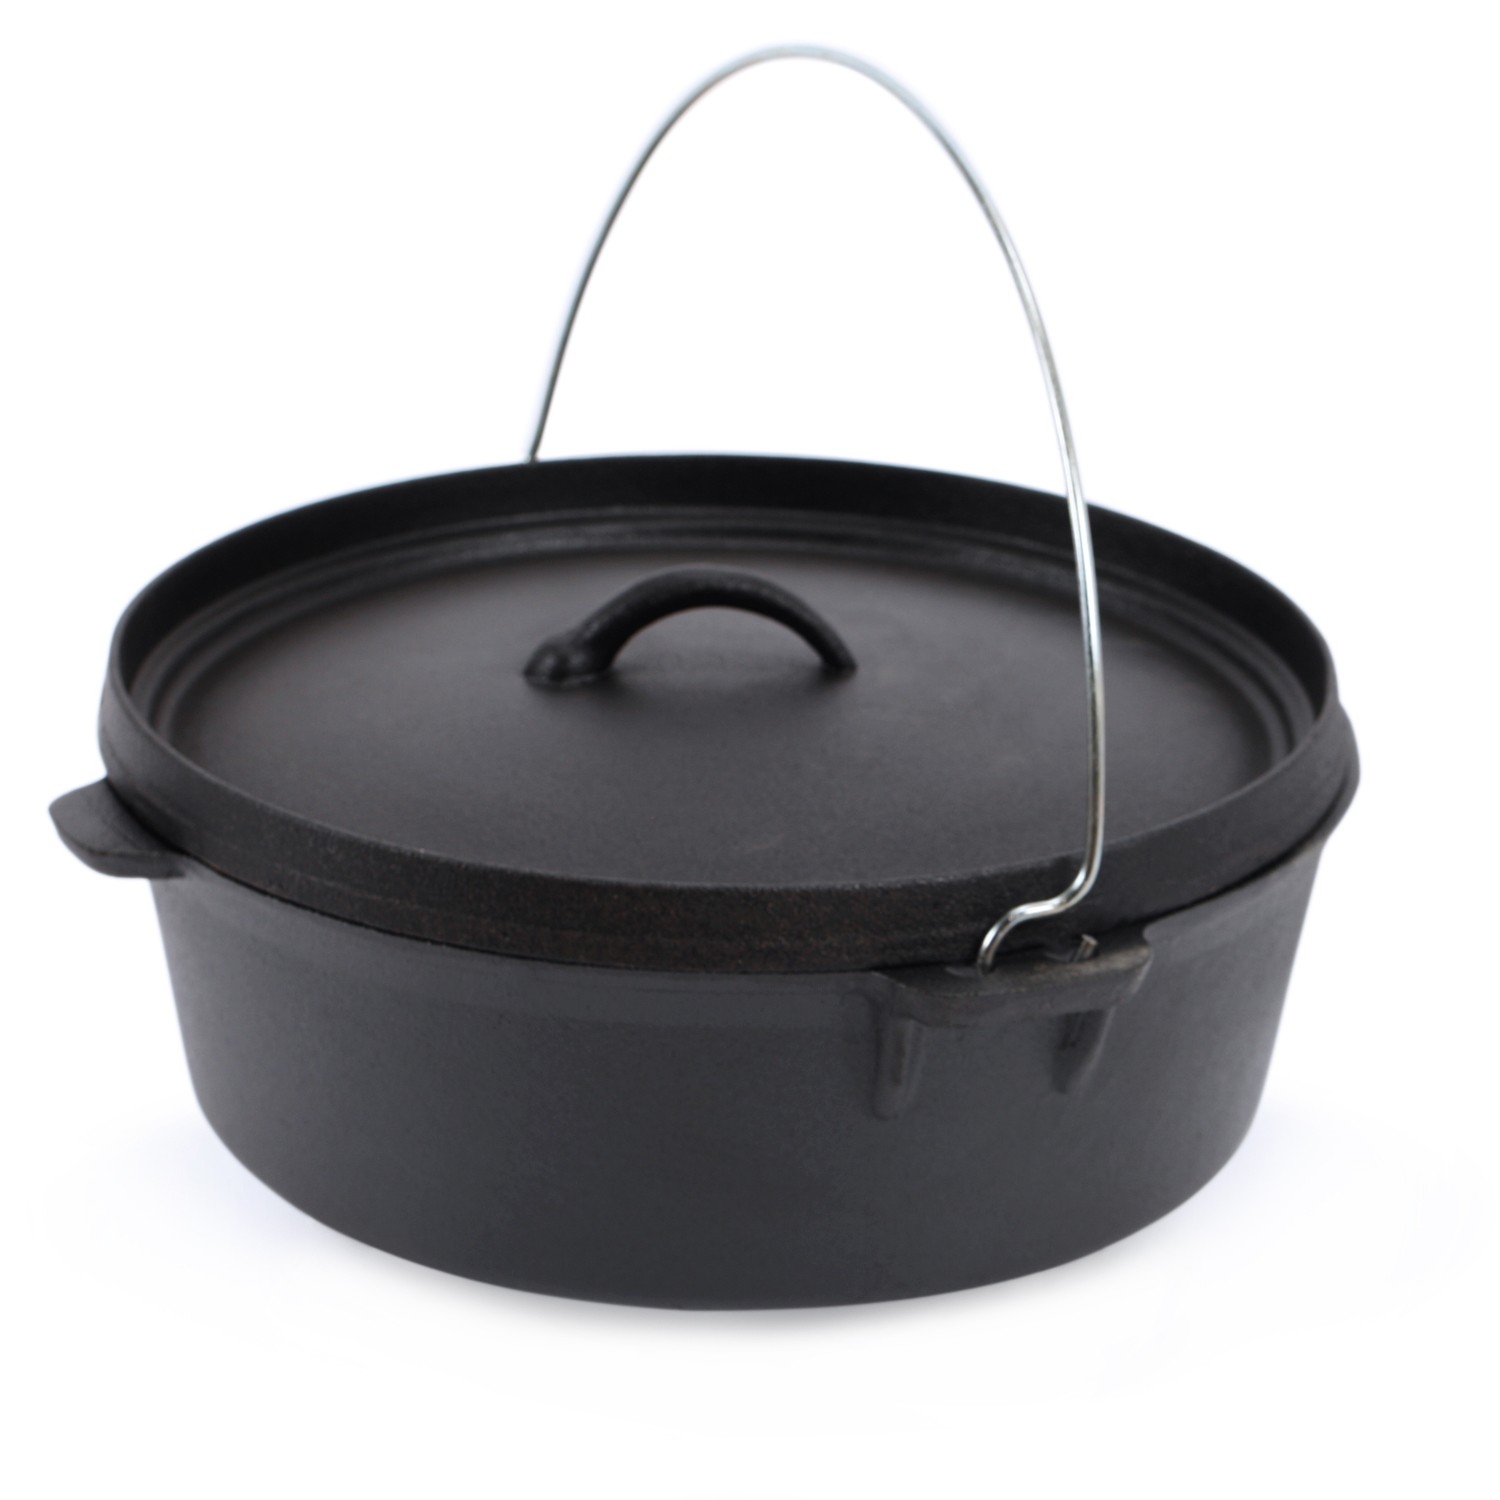 Kenley Cast Iron Dutch Oven Pre Seasoned Camping Cooking